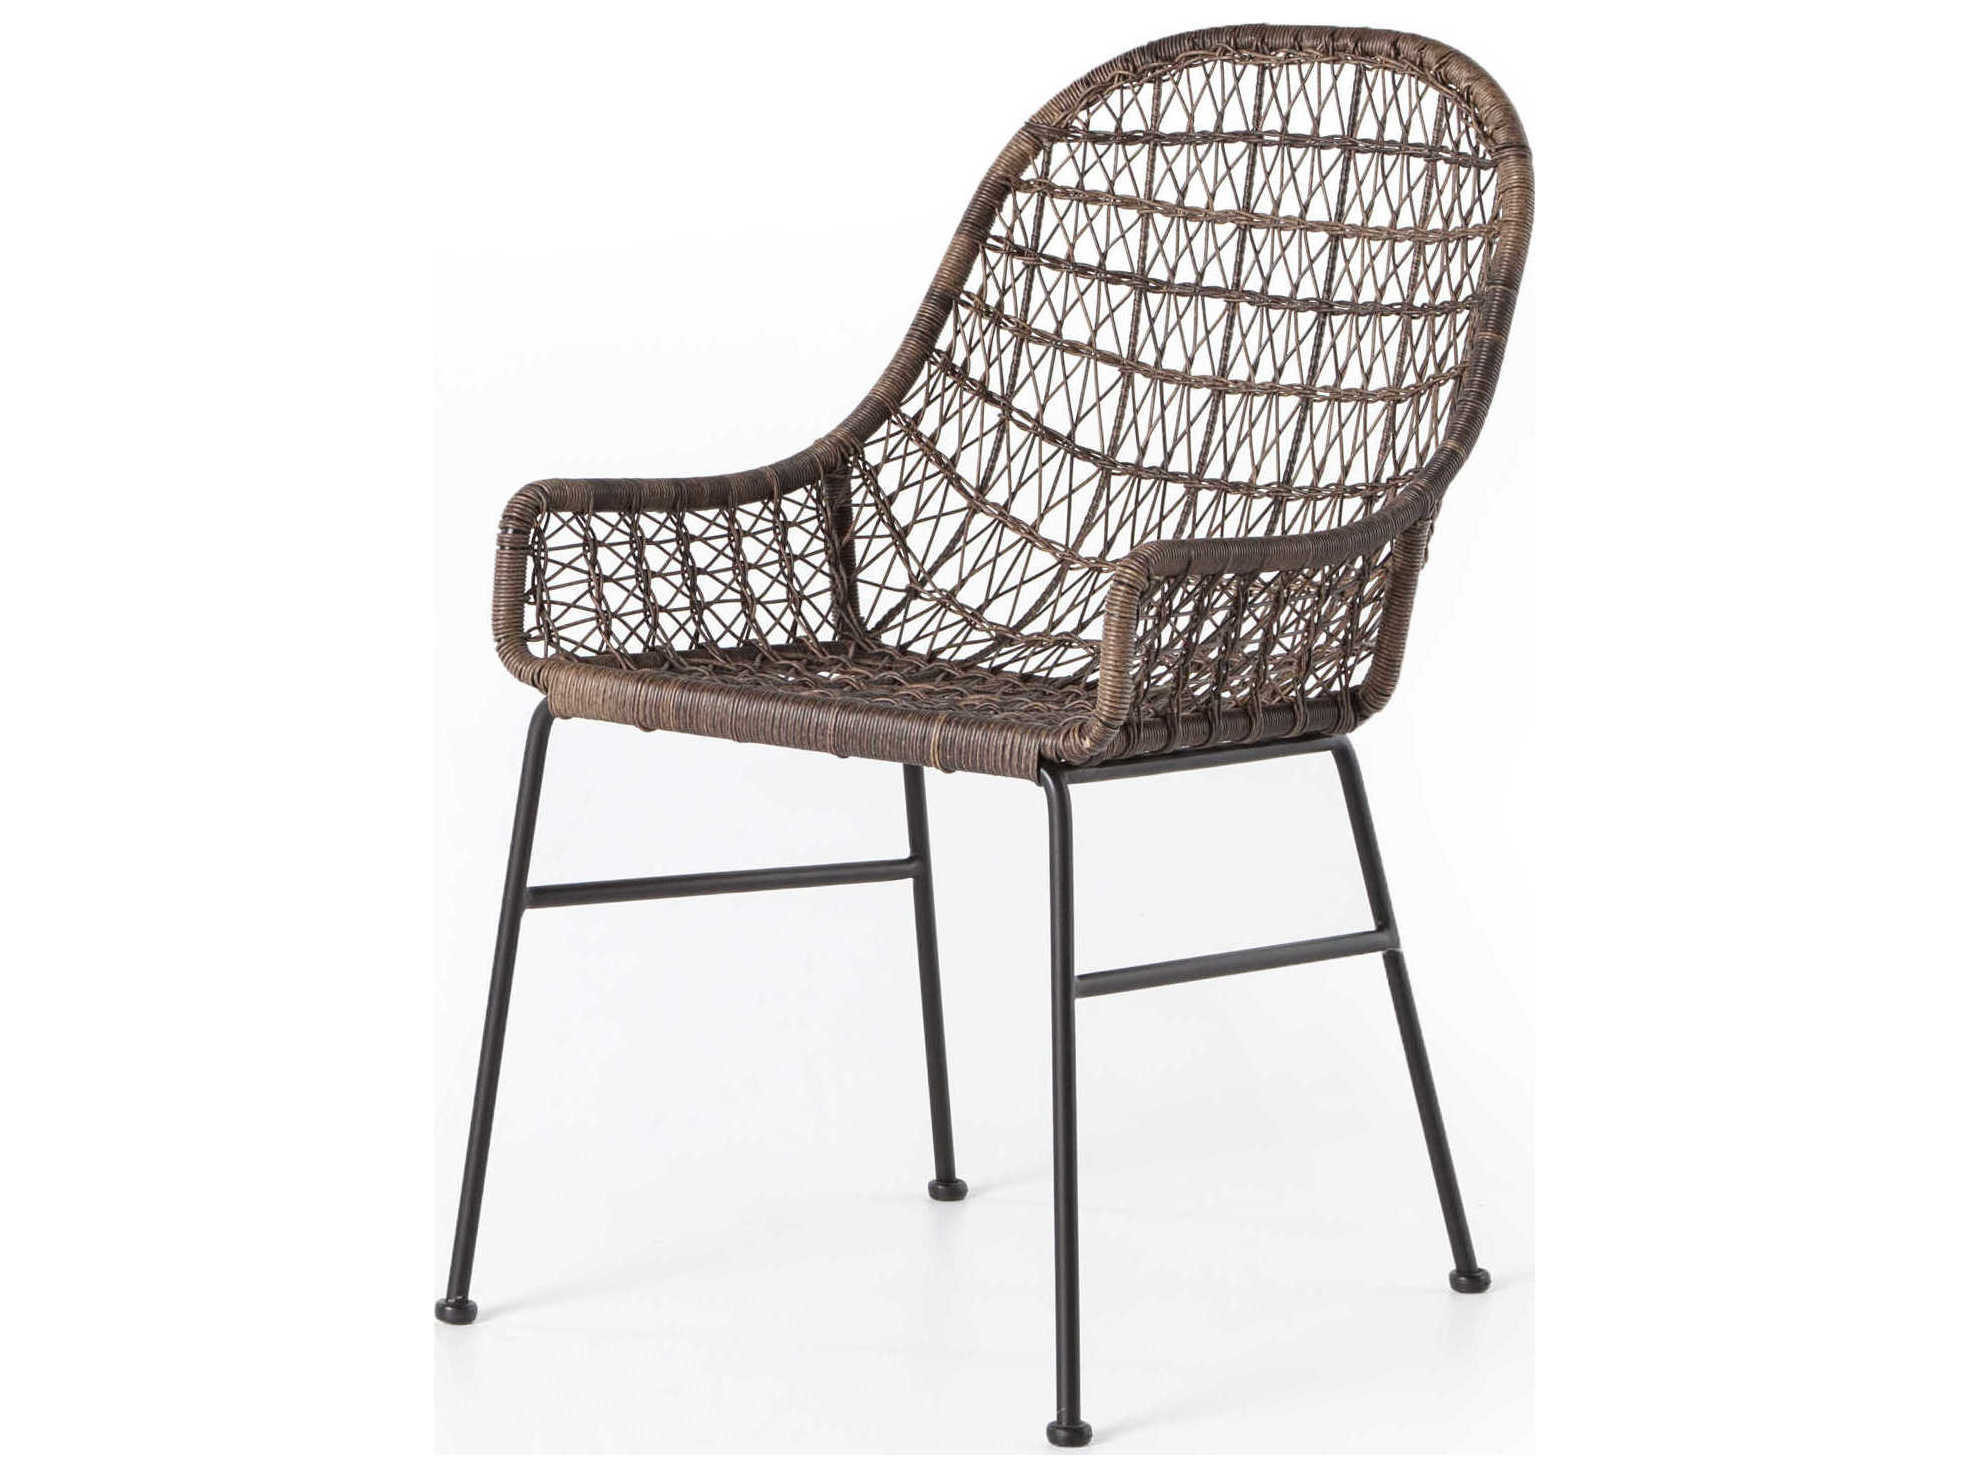 Four Hands Outdoor Grass Roots Natural Black Distressed Grey Wrought Iron Wicker Dining Chair Fhojlan130